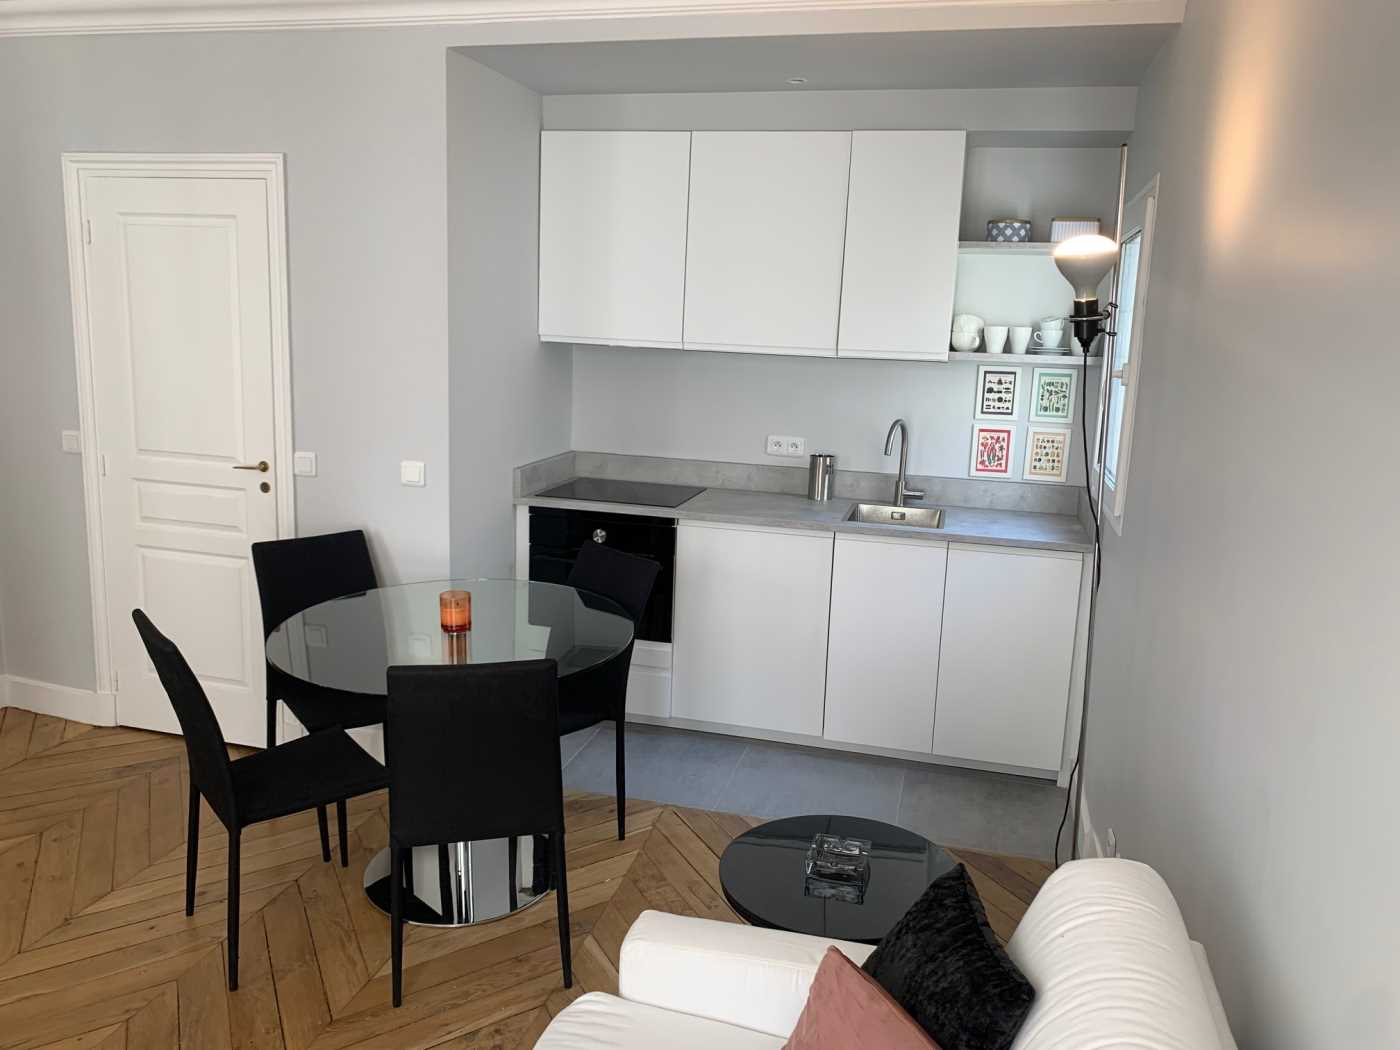 Location Appartement Meublé Paris